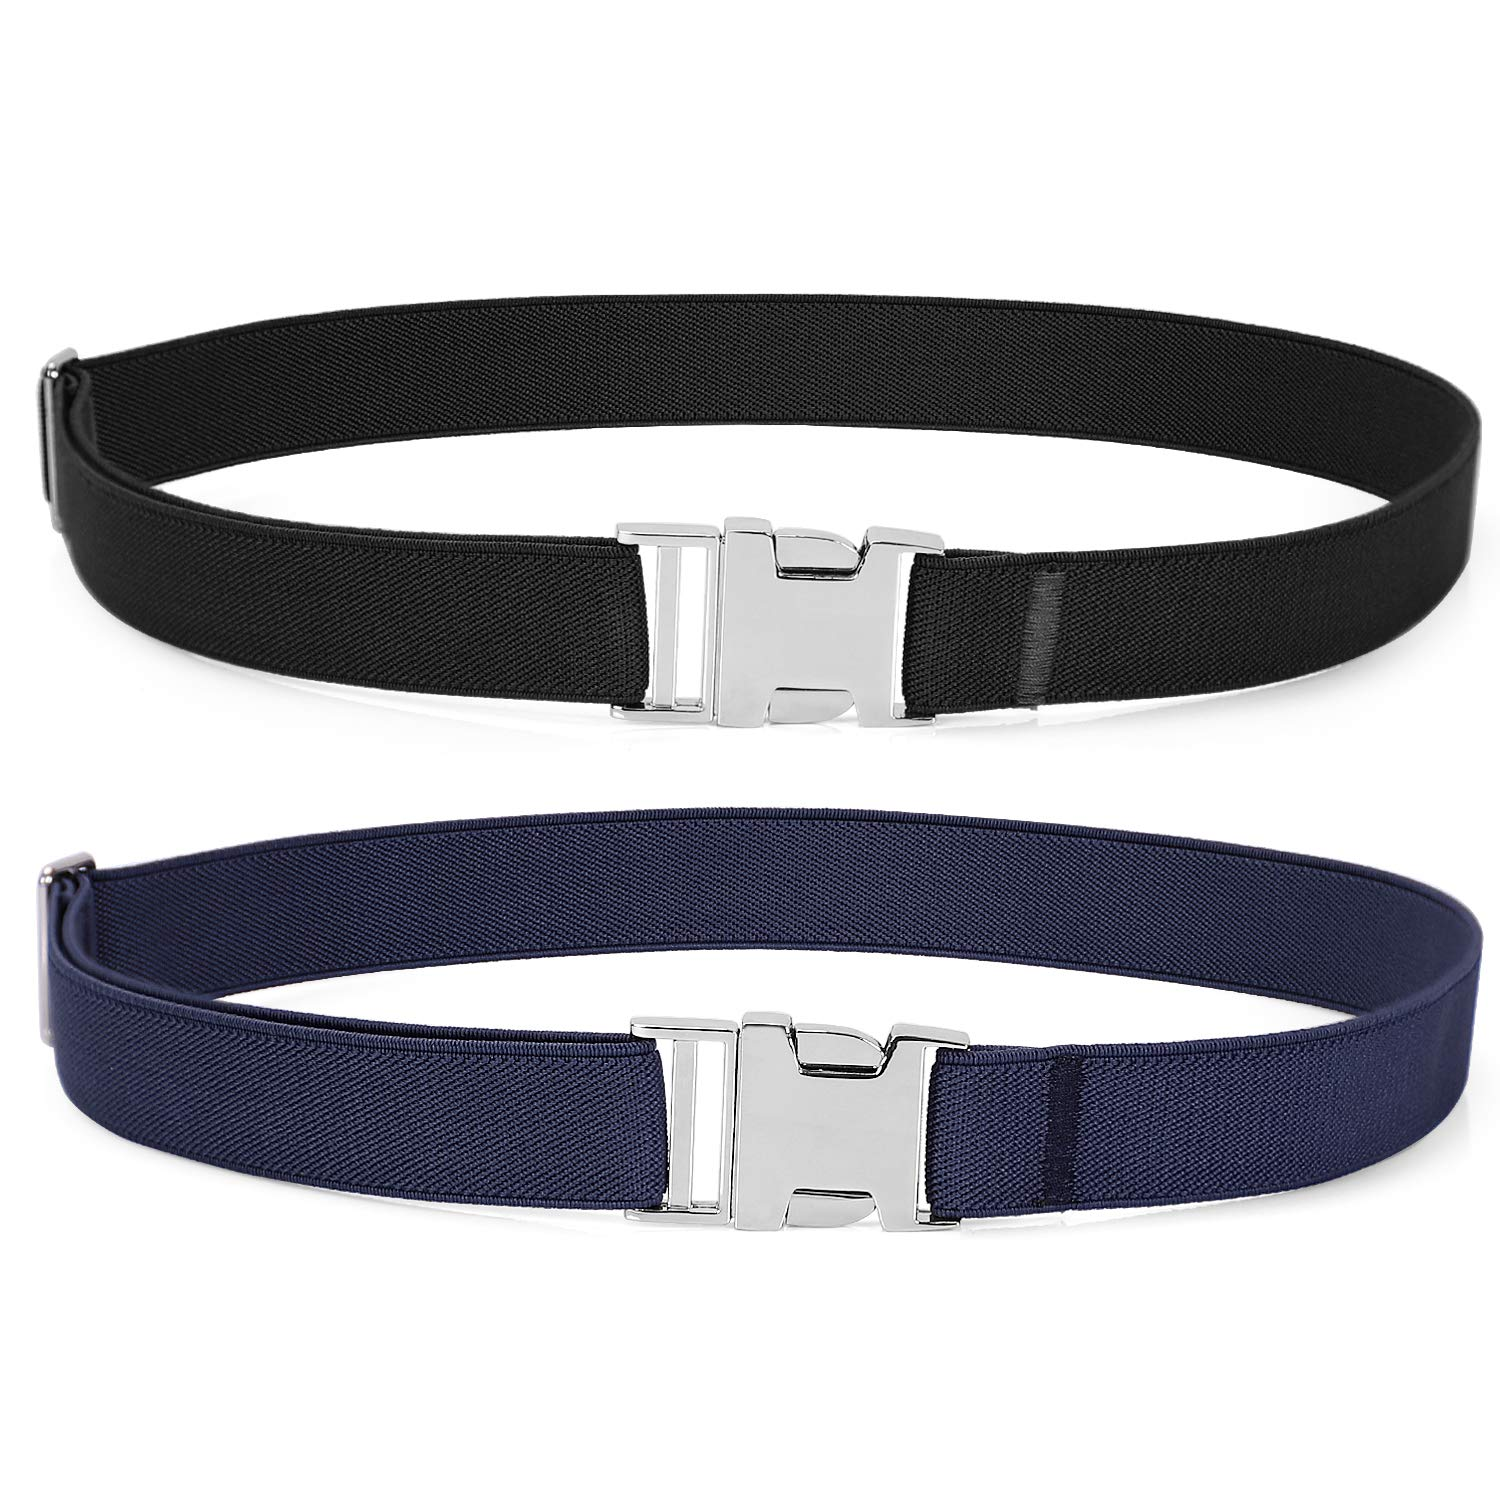 Kids Belt Boys Girls Stretch,fit for Pant Size below 26 inches